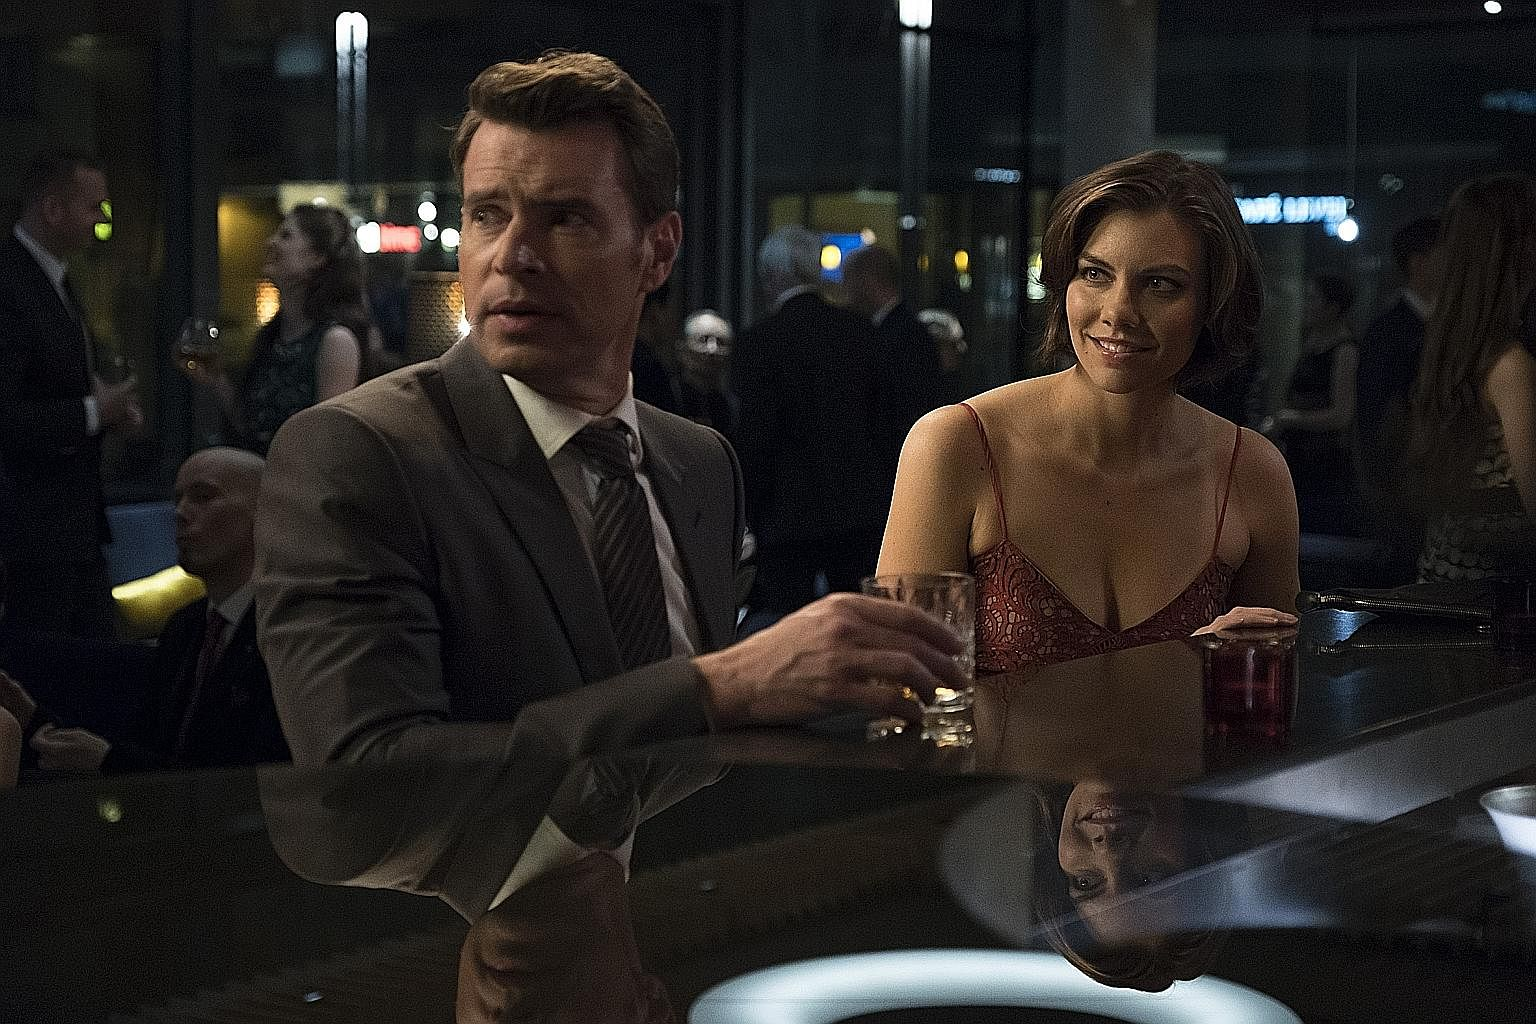 Scott Foley and Lauren Cohan star as rival operatives in spy comedy Whiskey Cavalier.